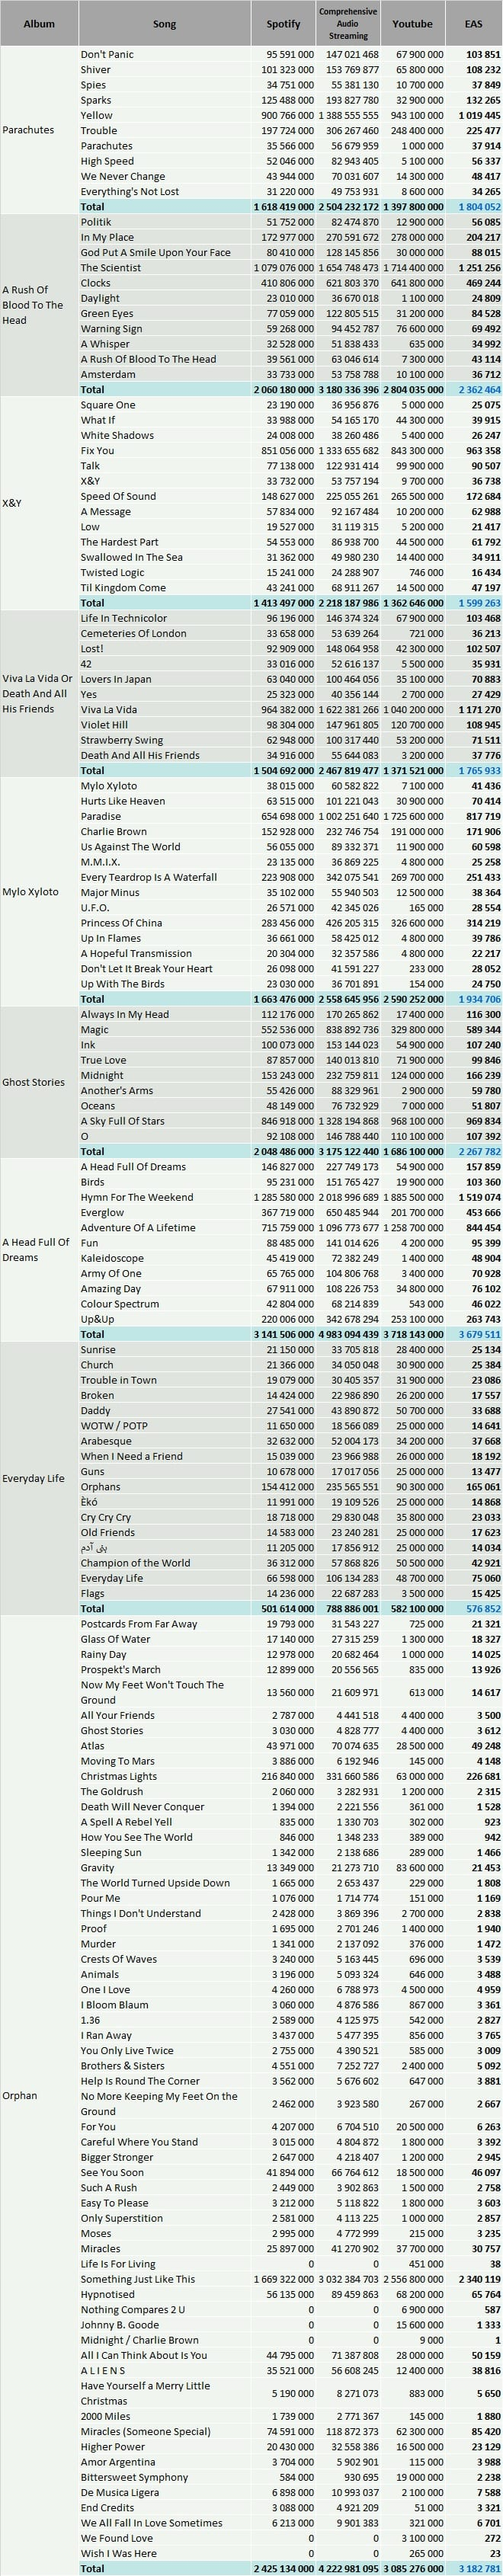 CSPC Coldplay 2021 discography streaming breakdown